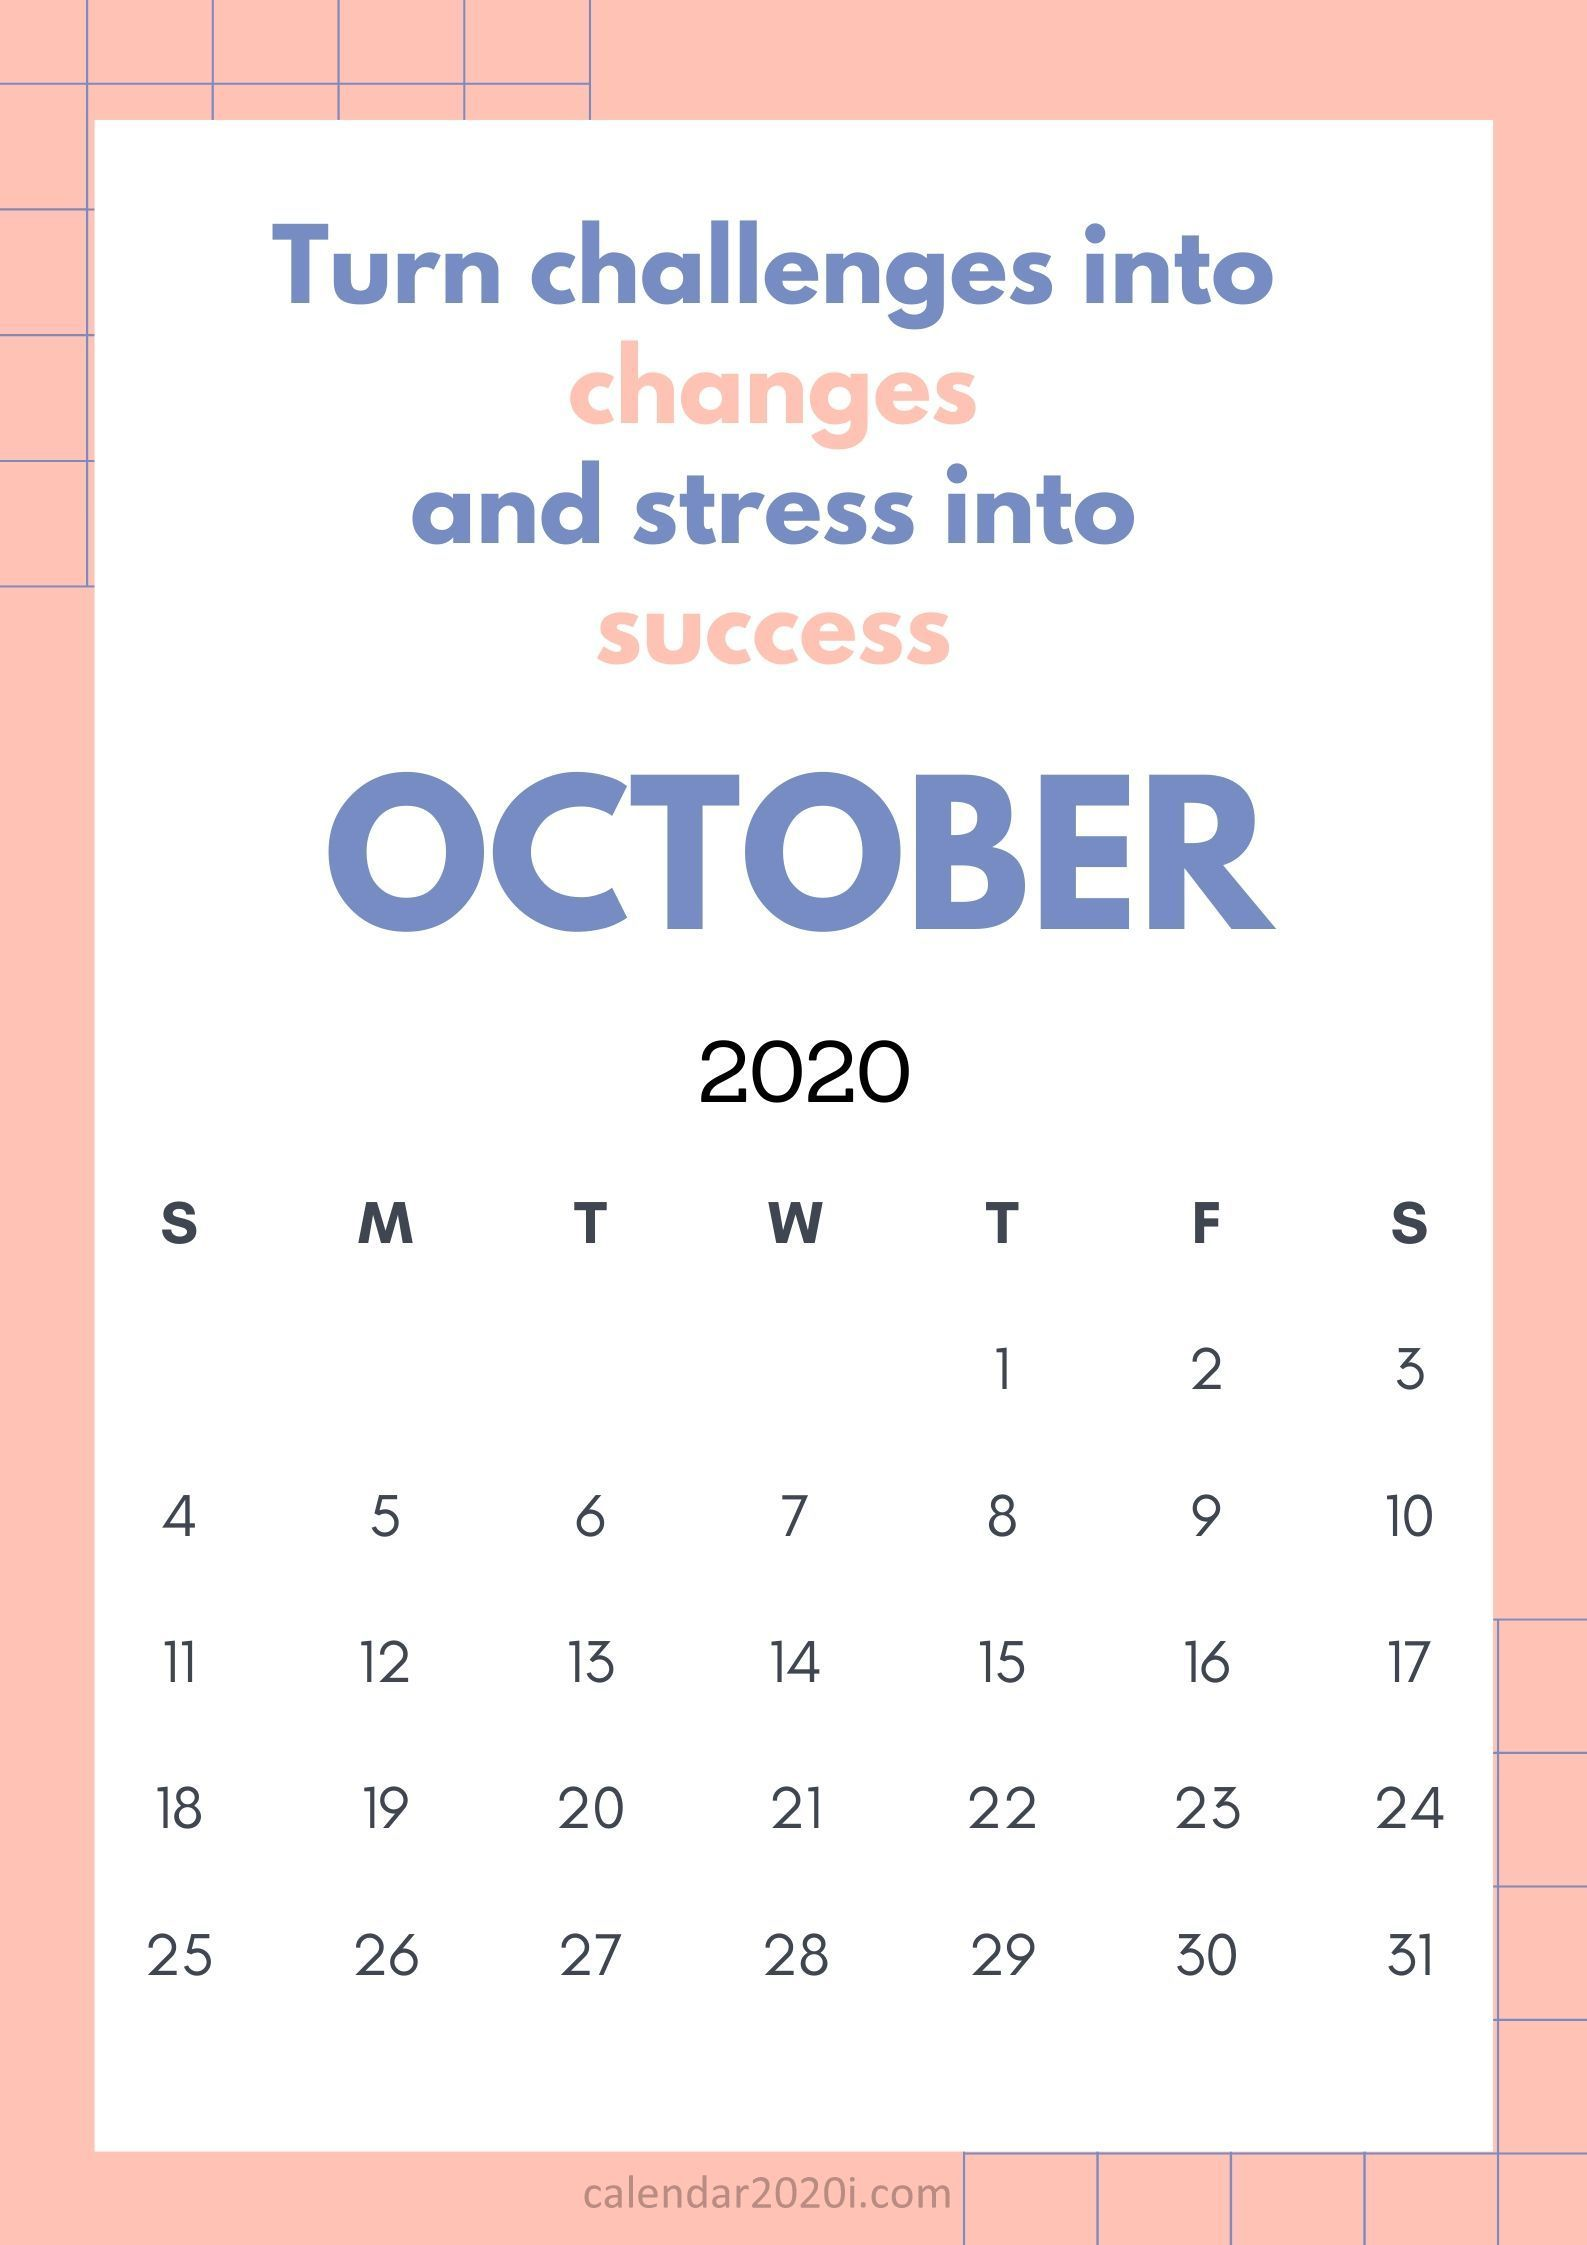 October 2020 Calendar With Quotes And Sayings Free Download Quotes Inspirational Quotes 2020 Calendar